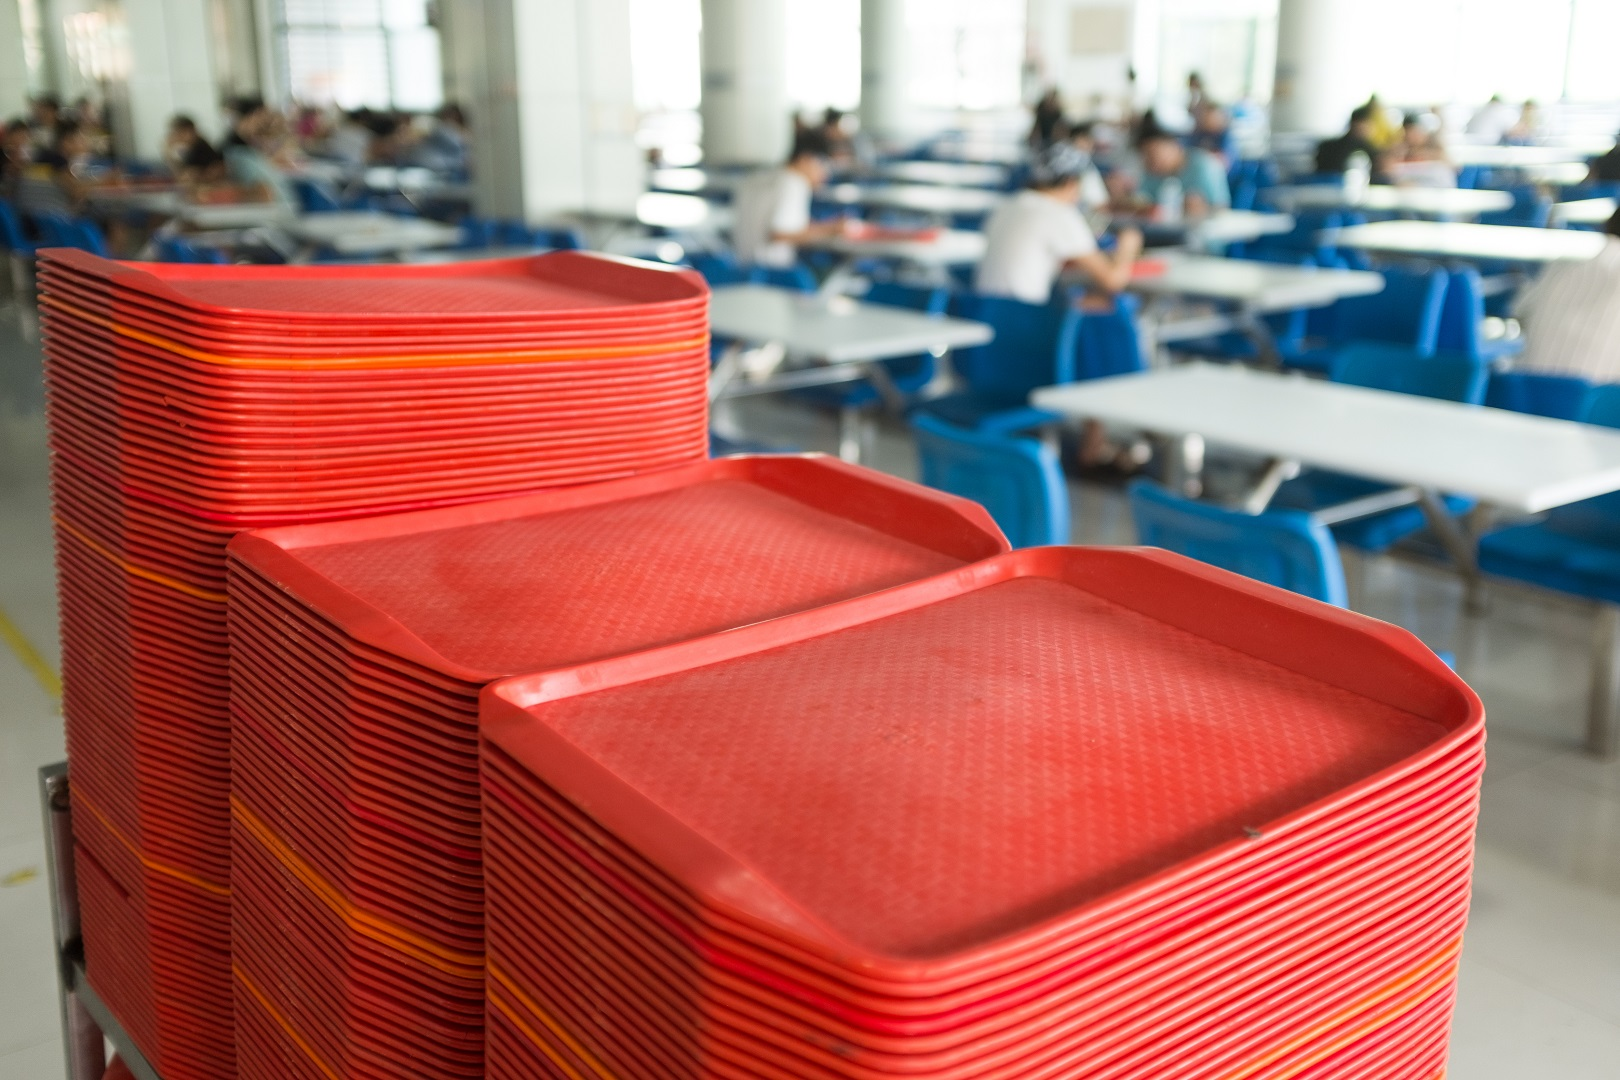 School Cafeteria Red Food Trays Stacked